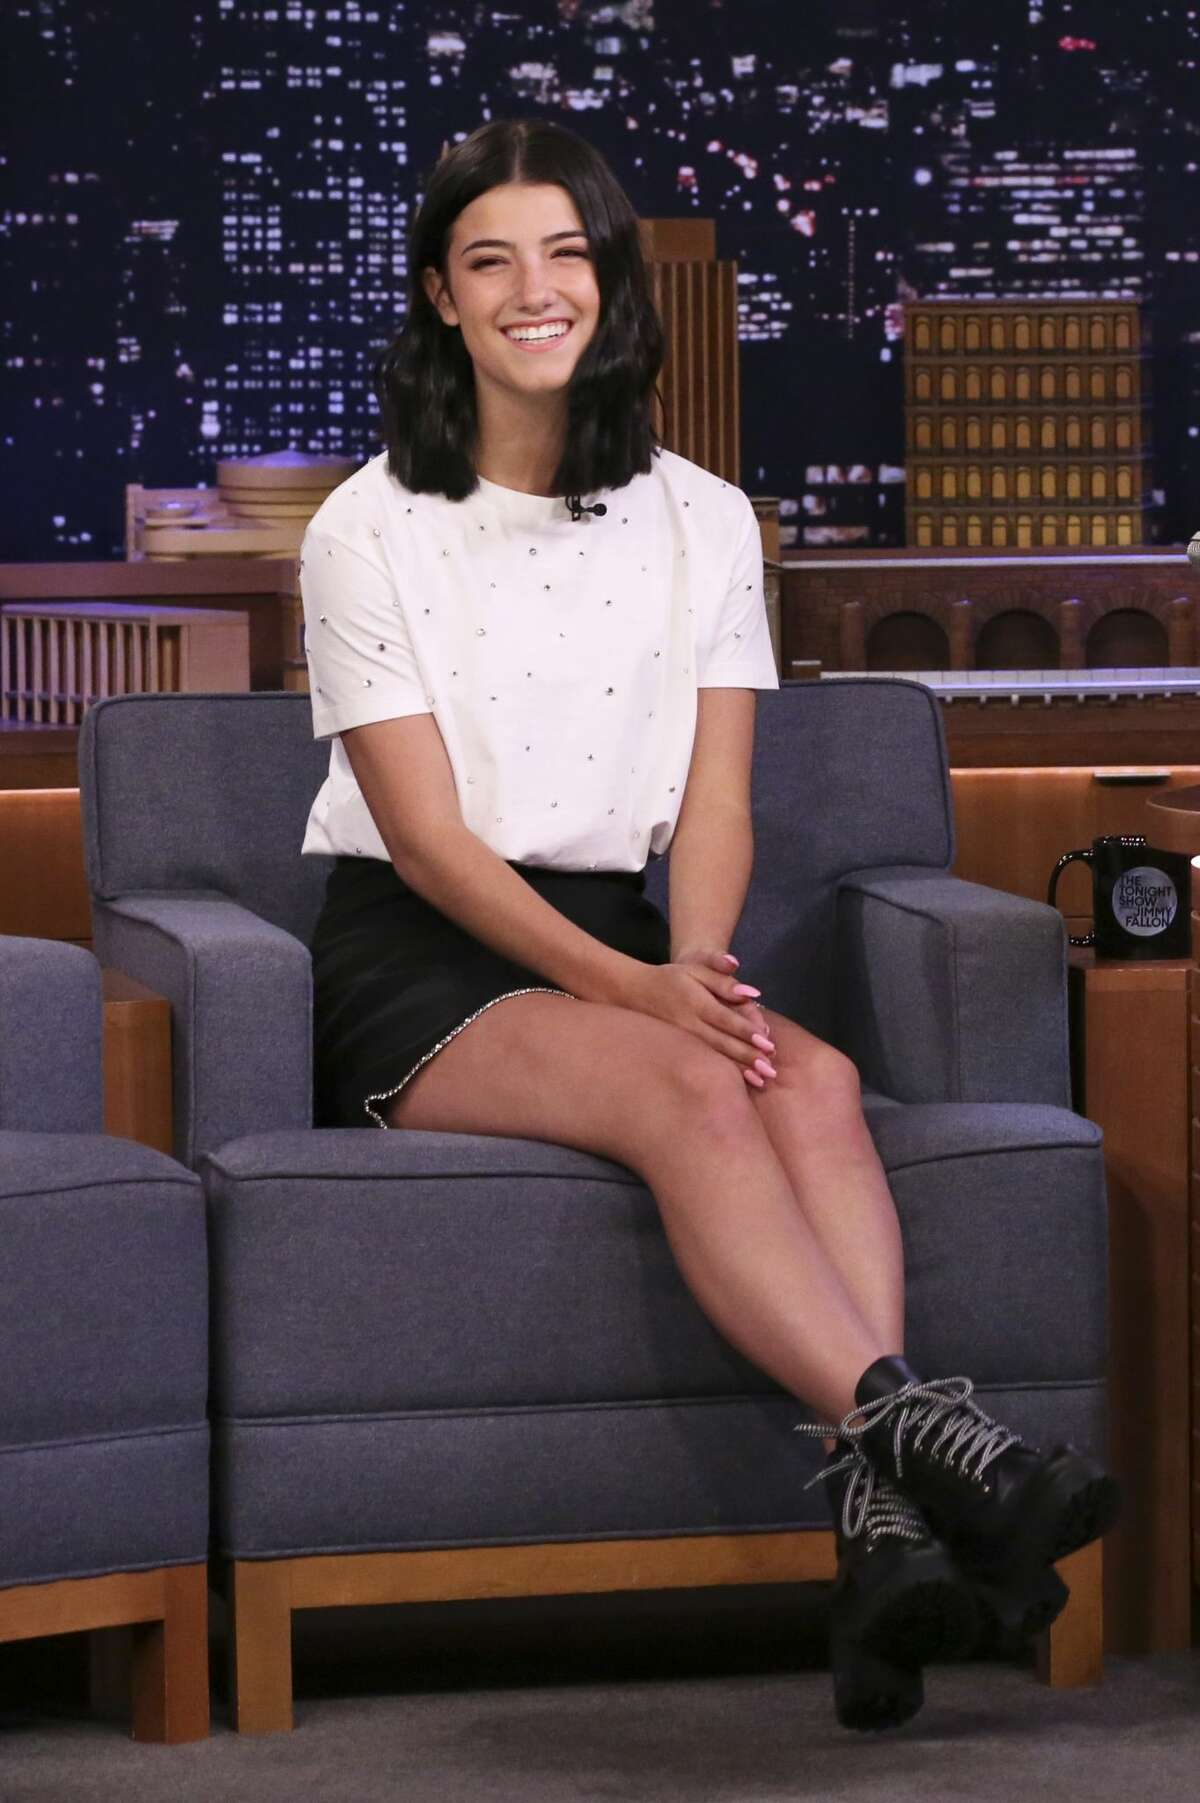 THE TONIGHT SHOW STARRING JIMMY FALLON -- Episode 1222 -- Pictured: Dancer Charli D'Amelio during an interview on March 10, 2020 -- (Photo by: Andrew Lipovsky/NBC/NBCU Photo Bank via Getty Images)